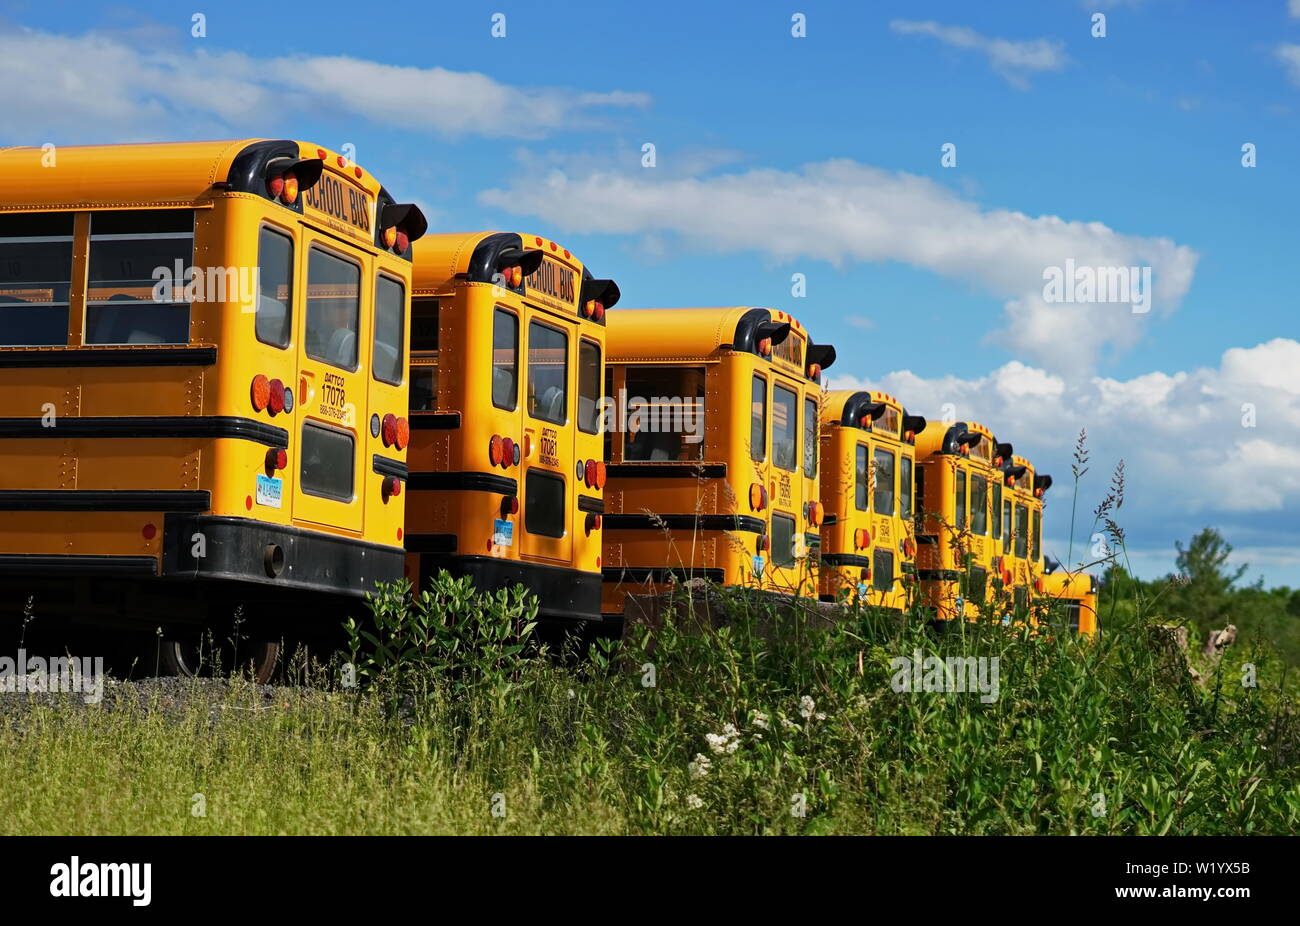 Middletown, CT / USA - June 6, 2019: Row of yellow school buses in a parking lot Stock Photo